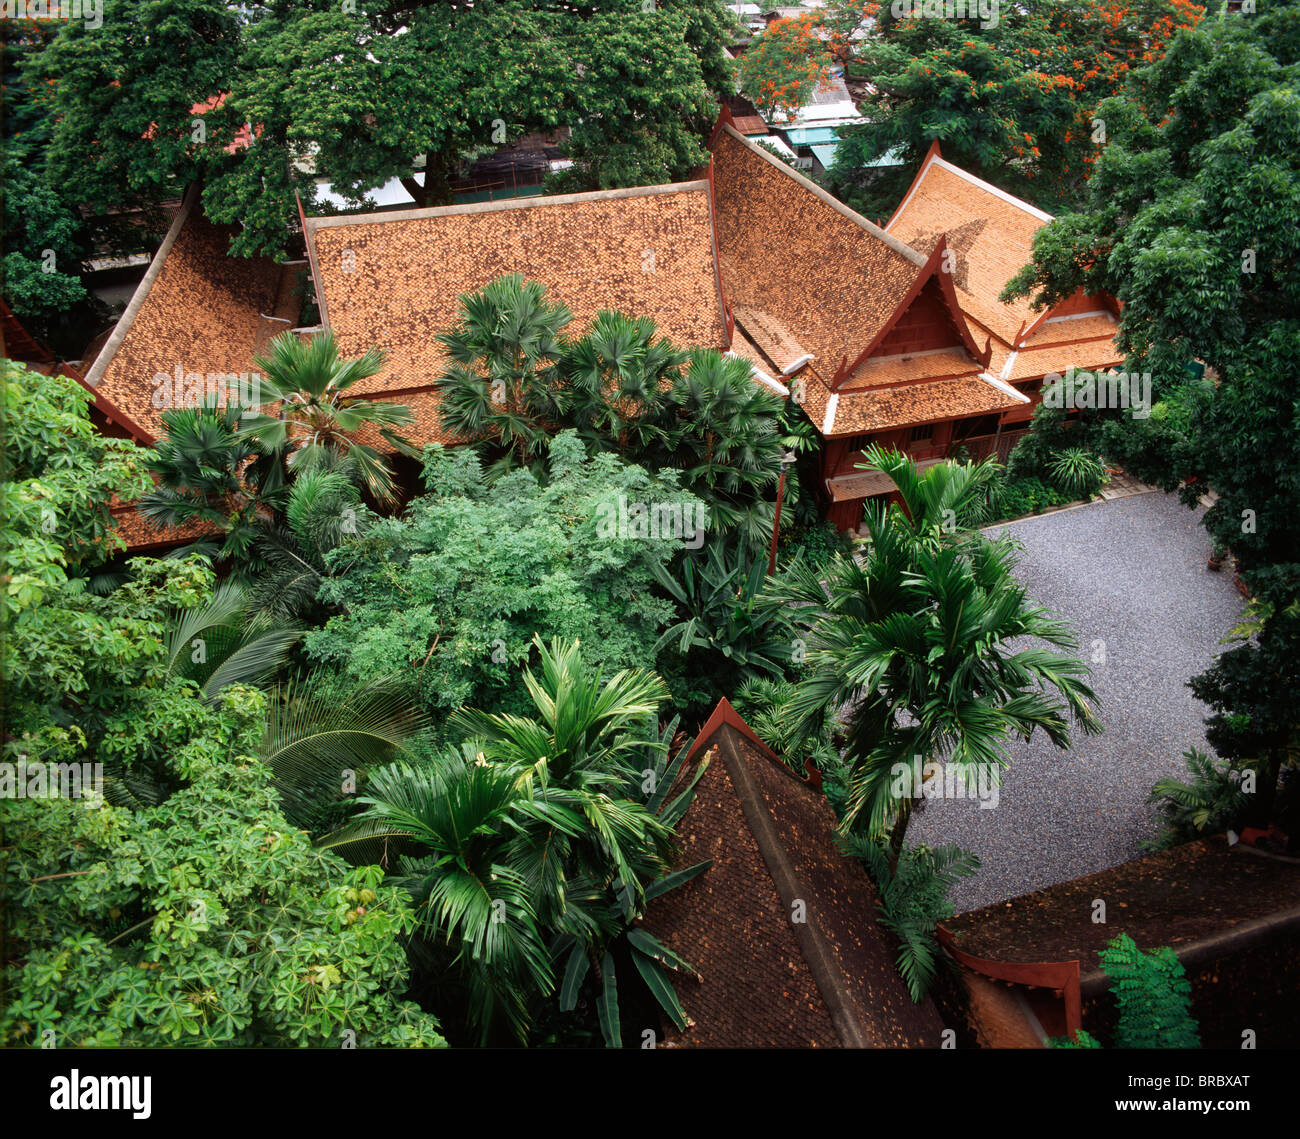 Garden of Jim Thompson House, Bangkok, Thailand - Stock Image